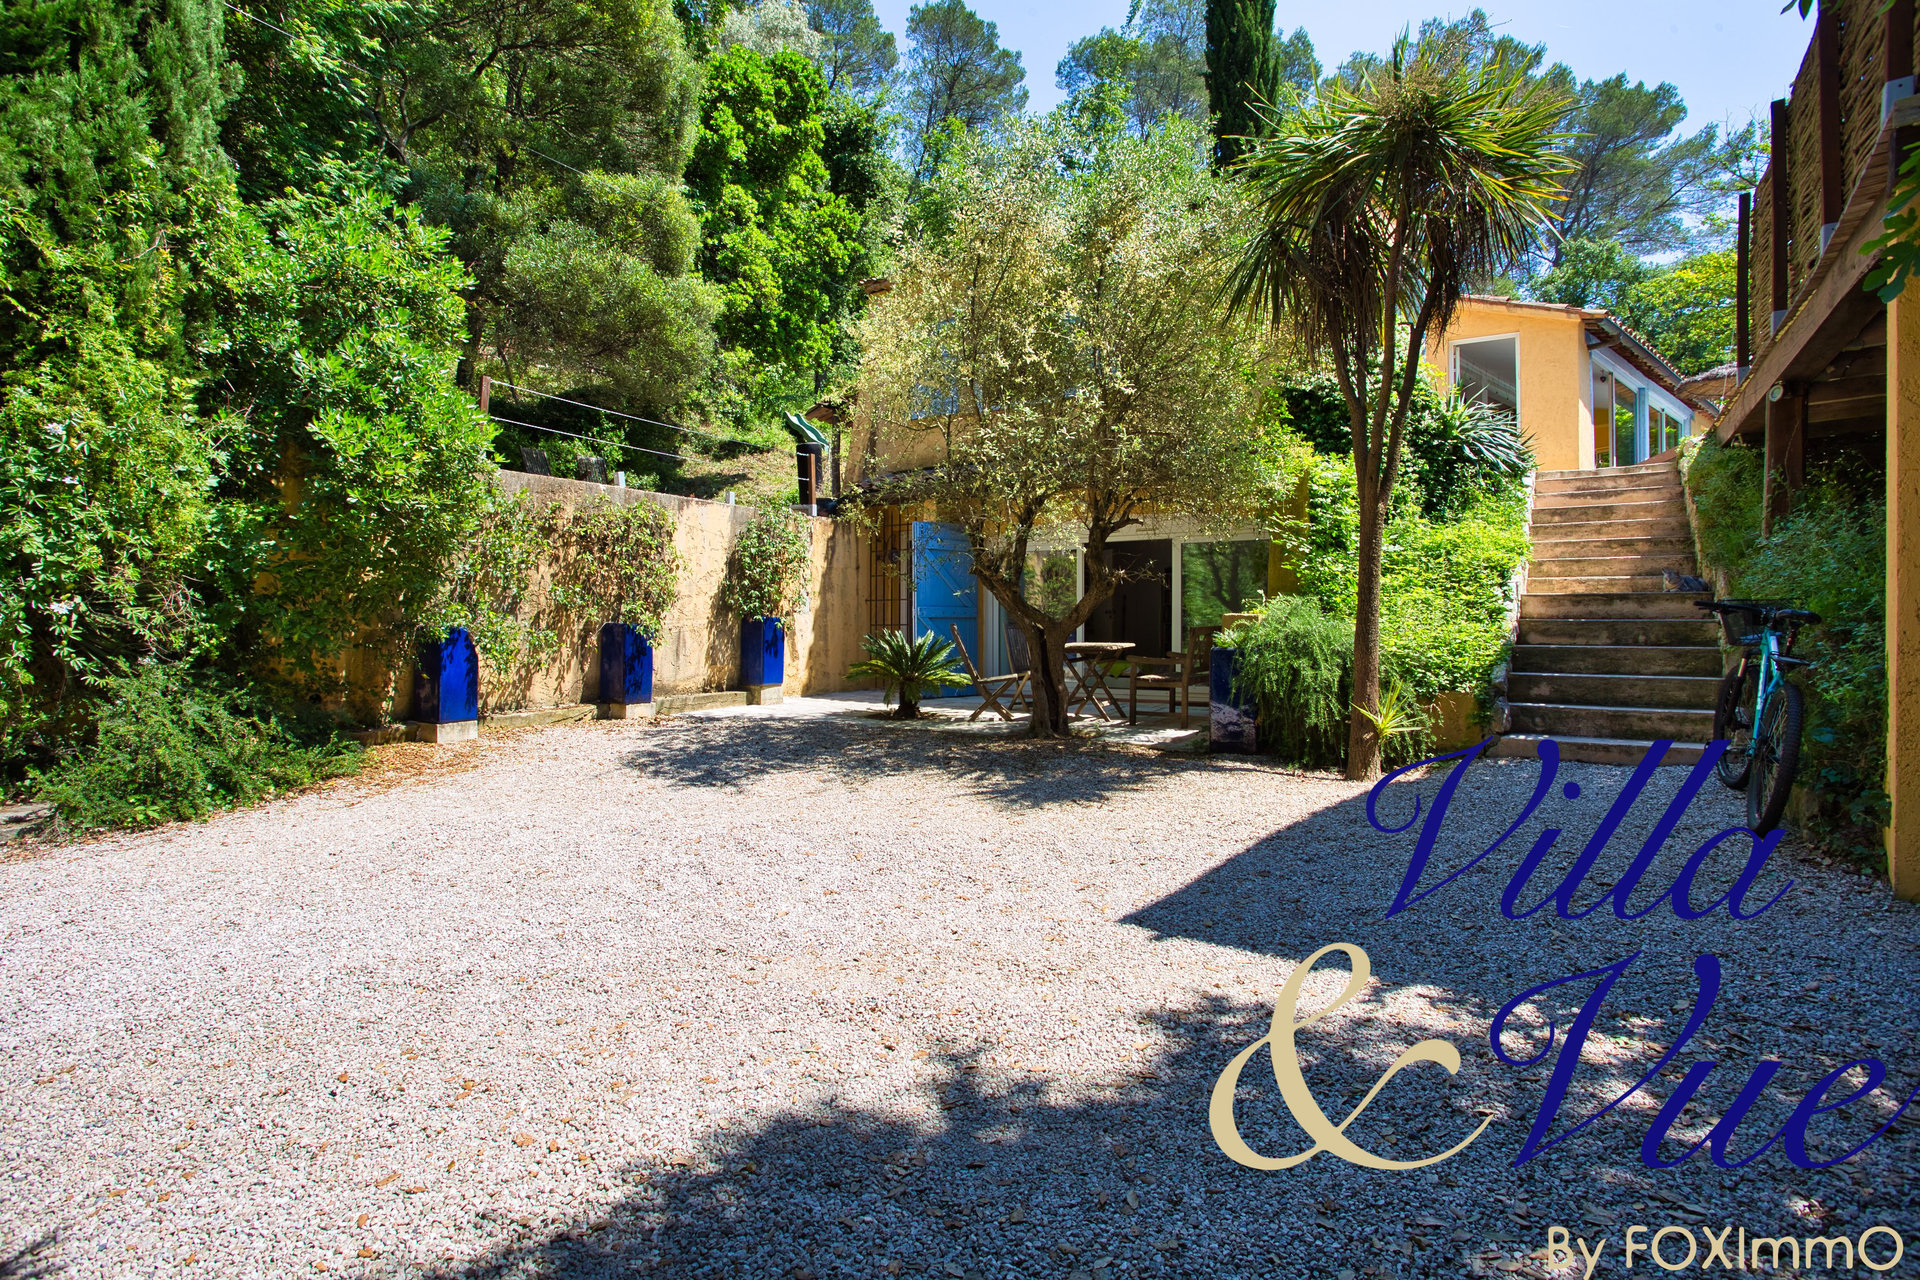 Villa of 150 m² 3 bedrooms with swimming pool in absolute quiet